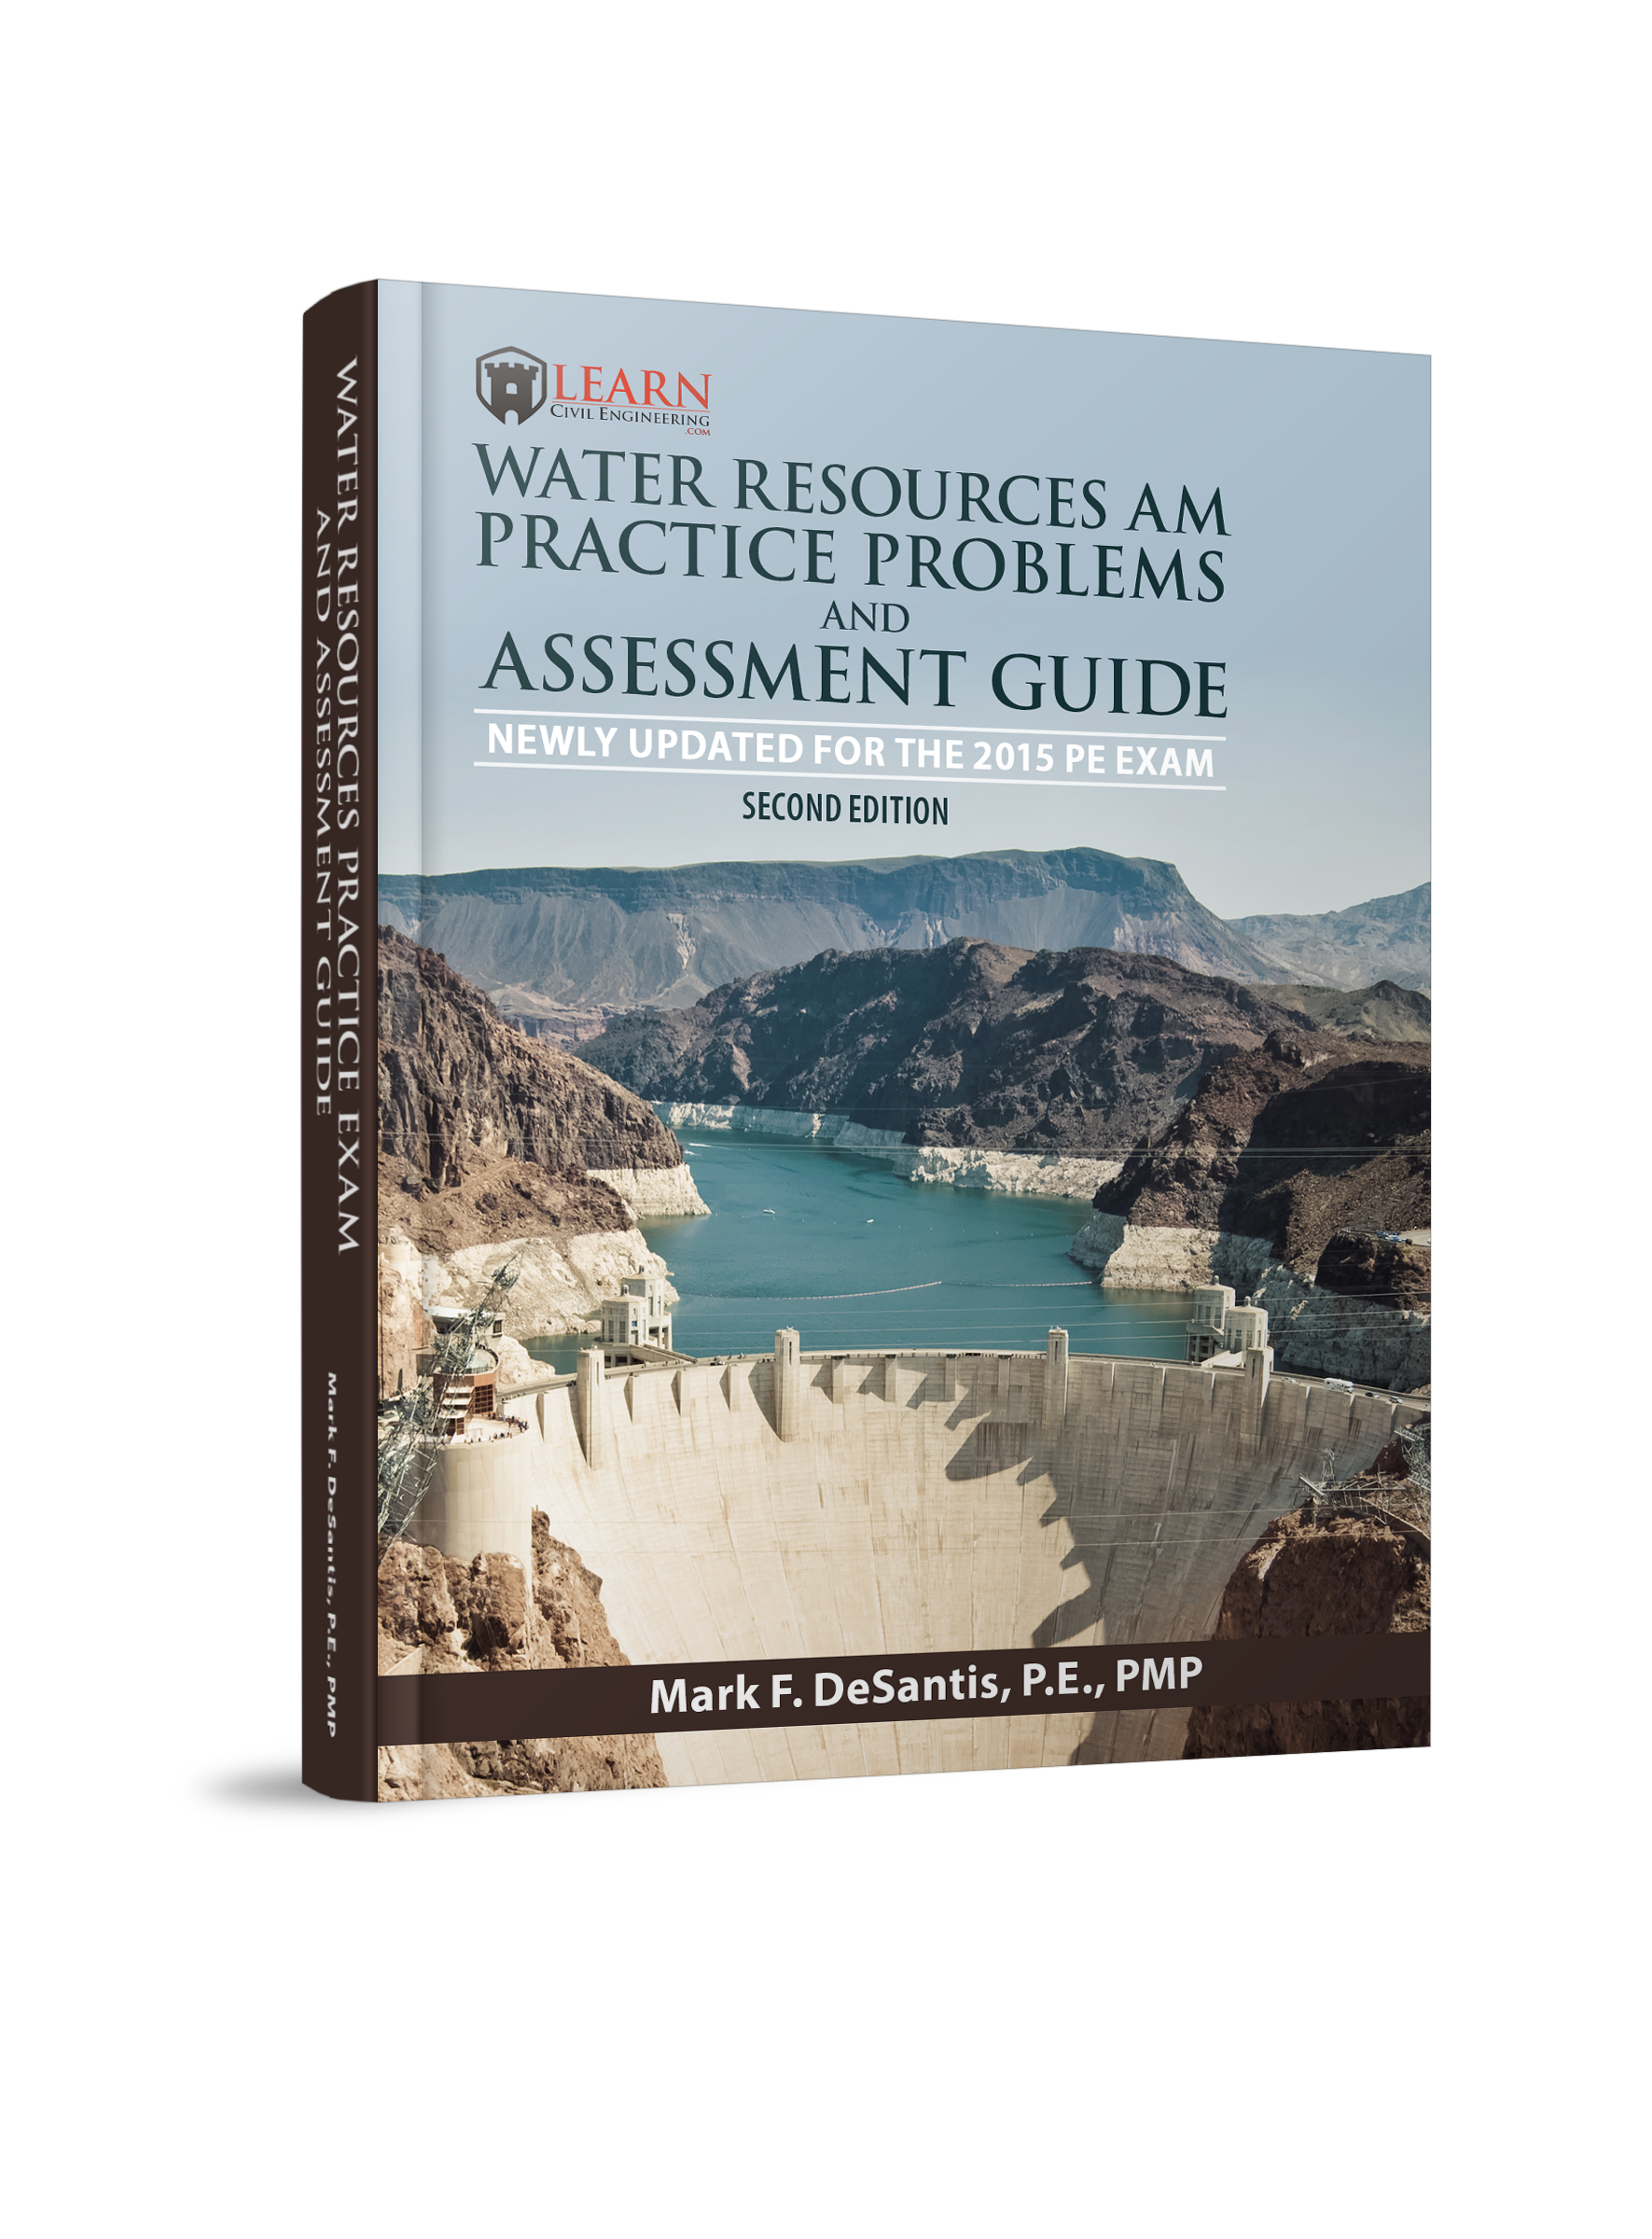 The 10 Keys for passing the PE Exam   Learn Civil Engineering